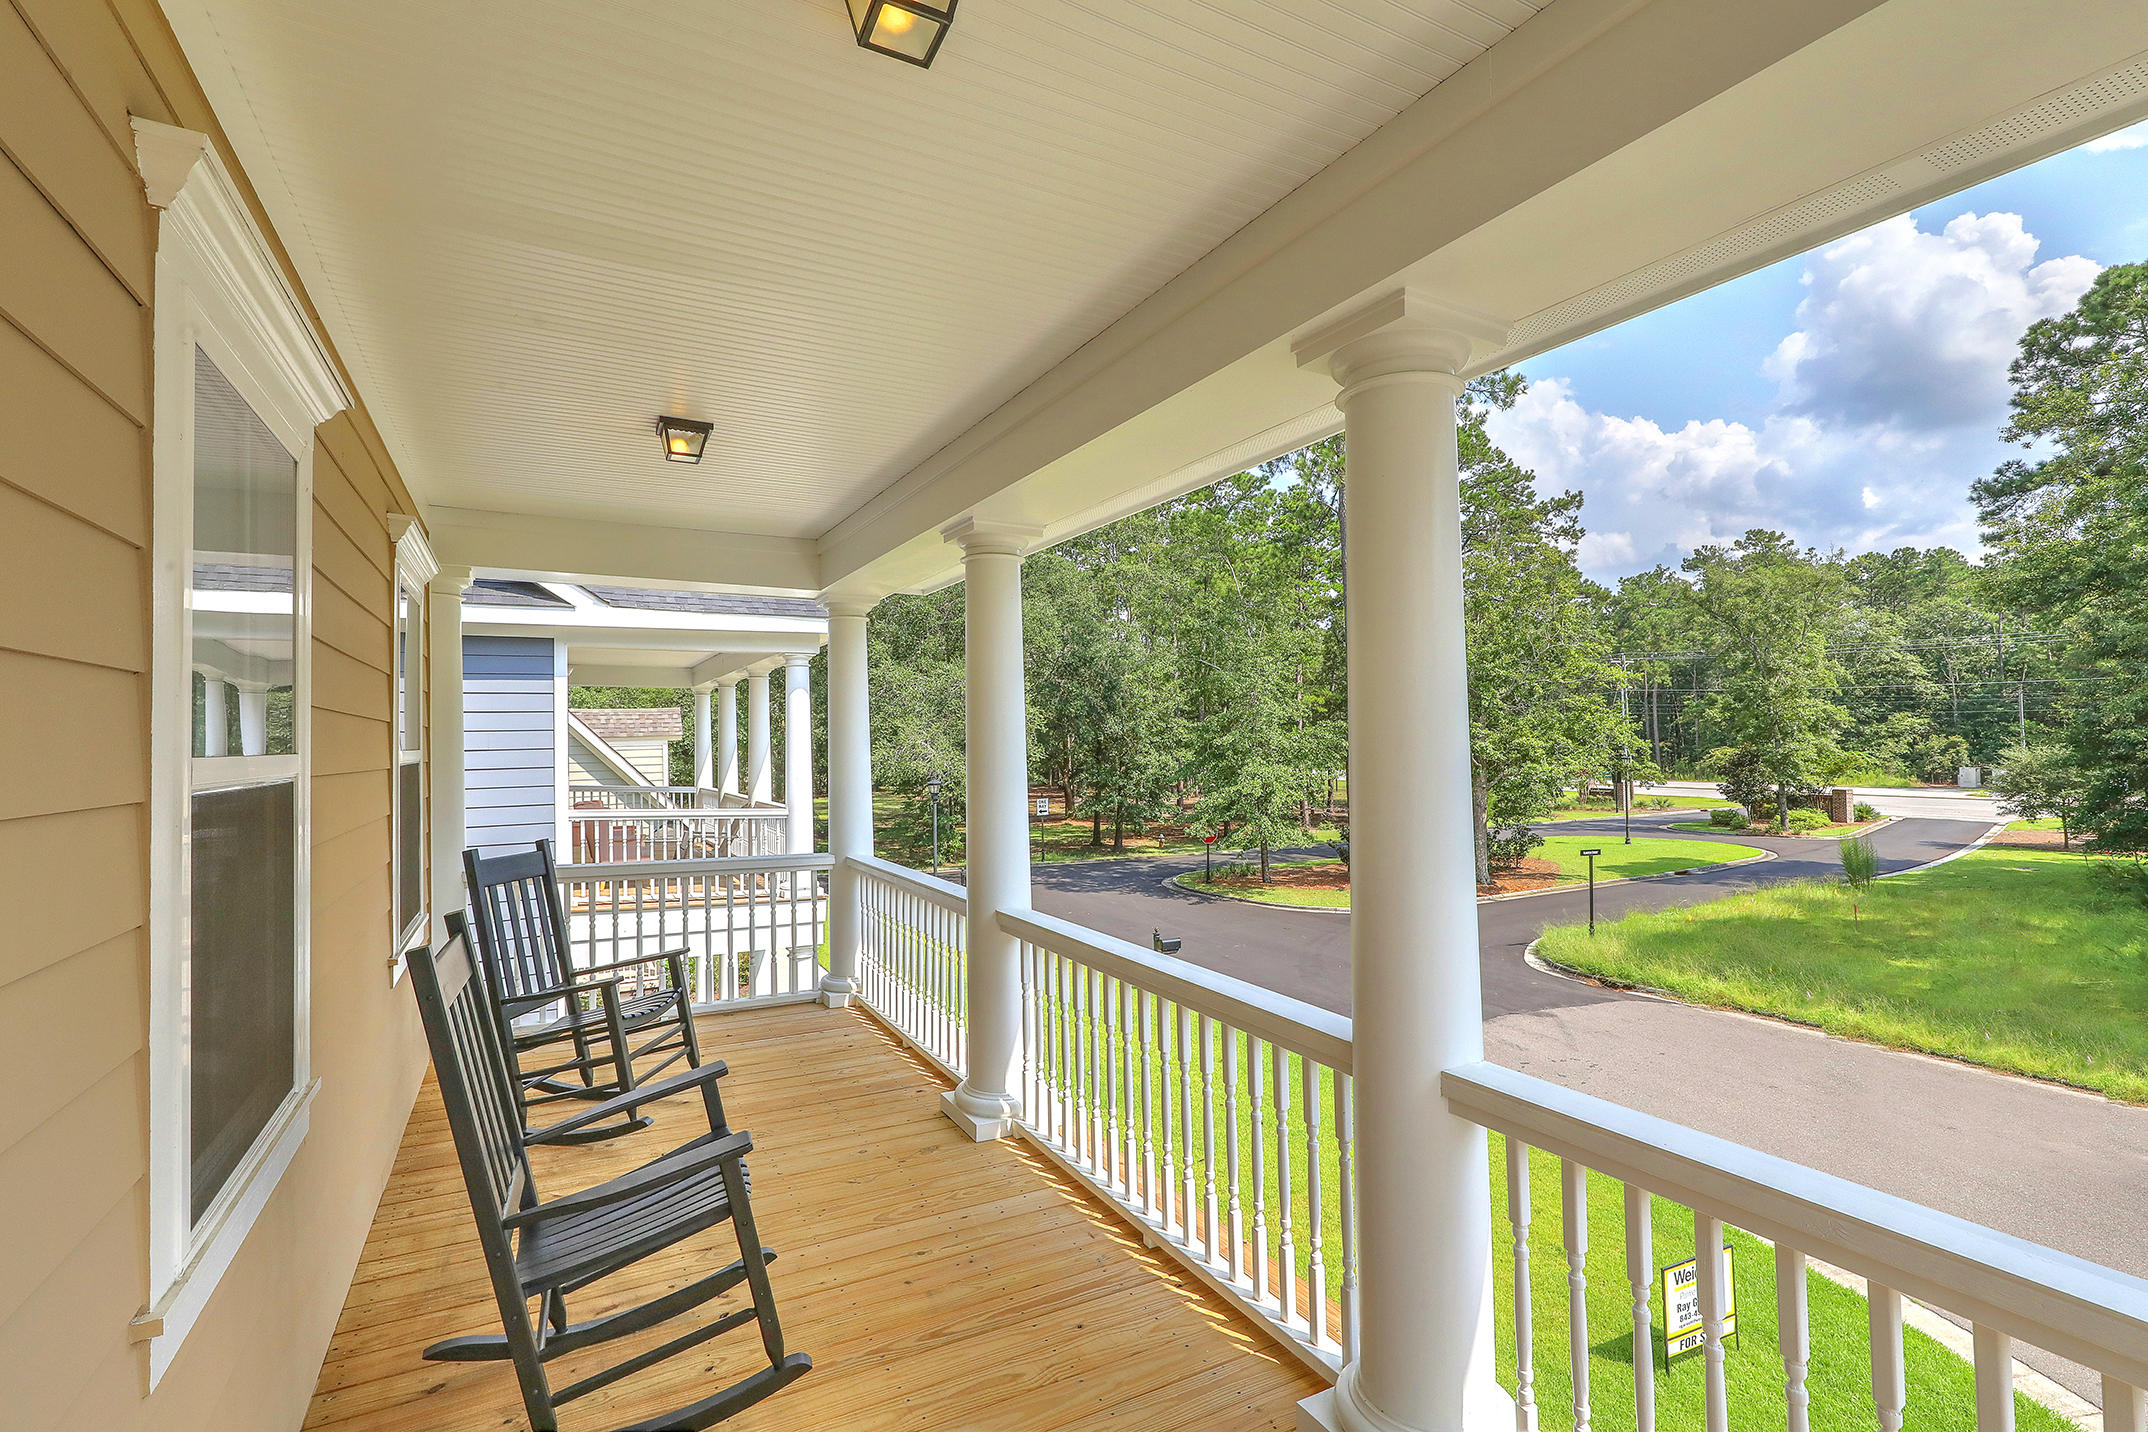 Photo of 104 Ilderton Street, Summerville, SC 29483